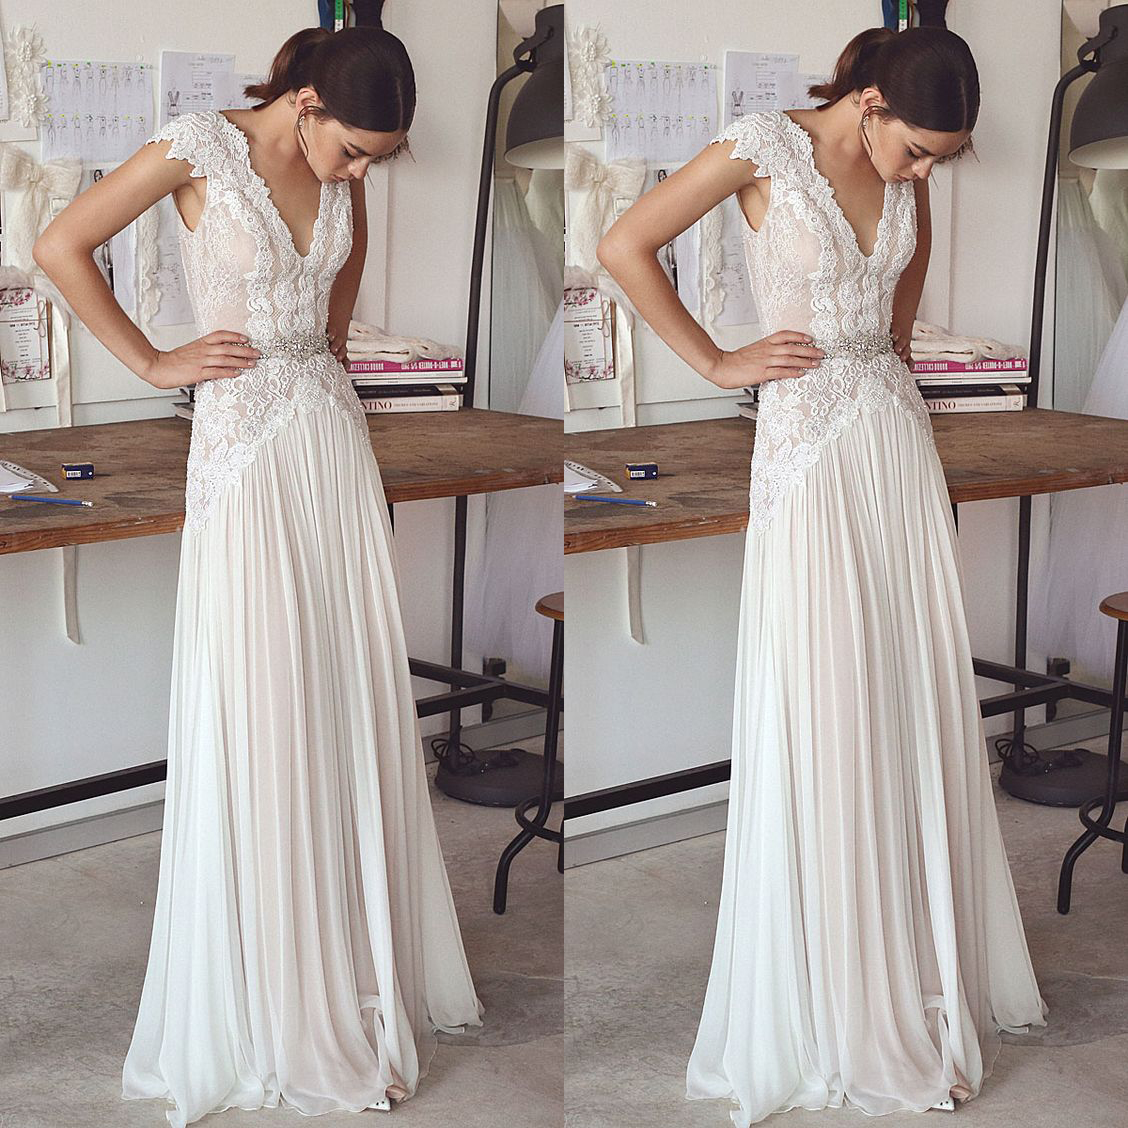 Boho Wedding Dresses 2018 Bohemian Bridal Gowns With Cap Sleeves And V Neck Pleated Skirt Elegant A Line Bridal Gowns Low Back From Better4u